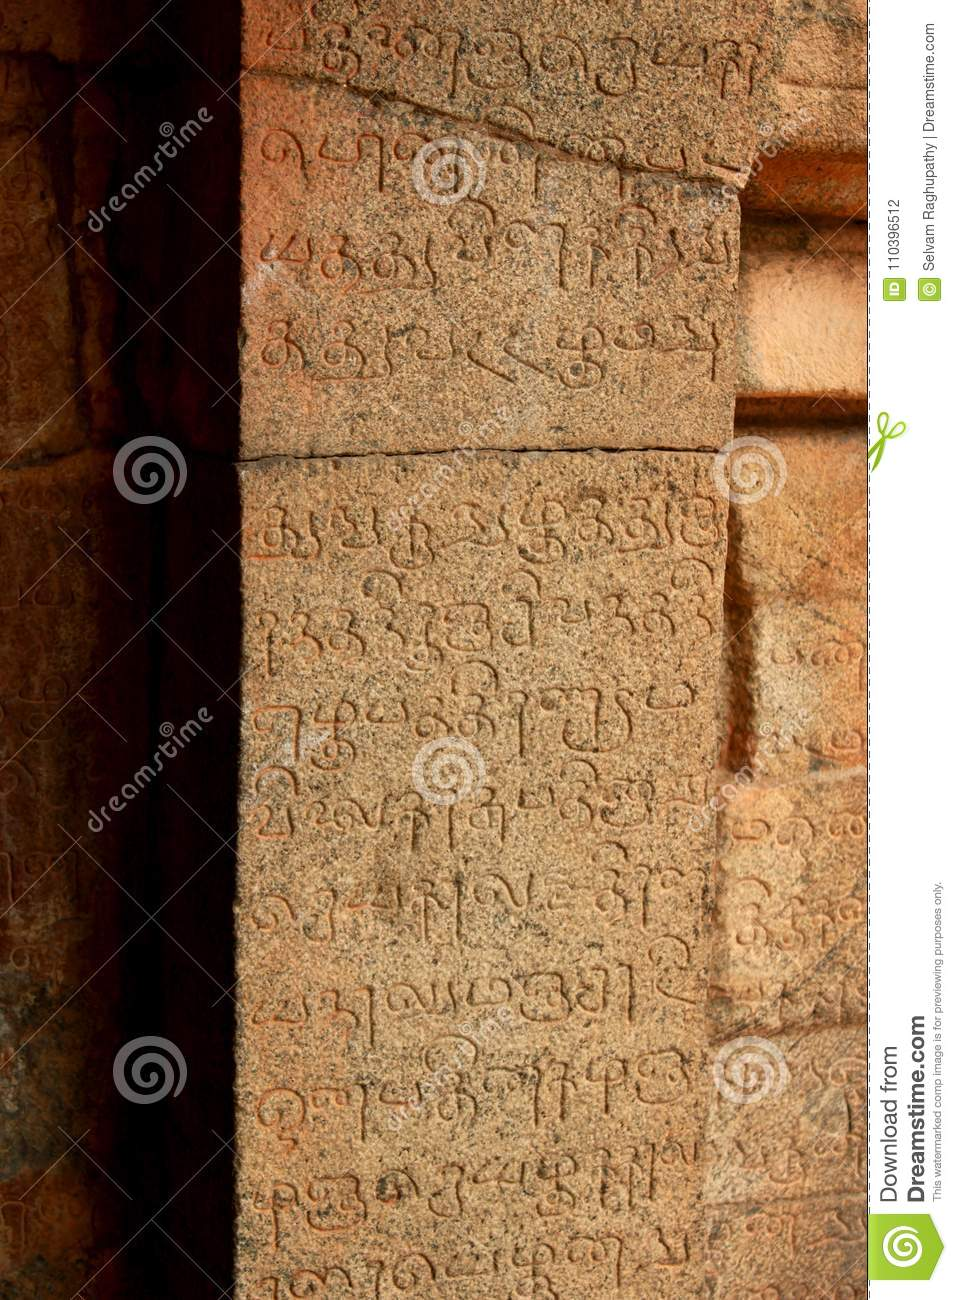 Tamil and Sanskrit inscriptions on a pillar from the 11th century.